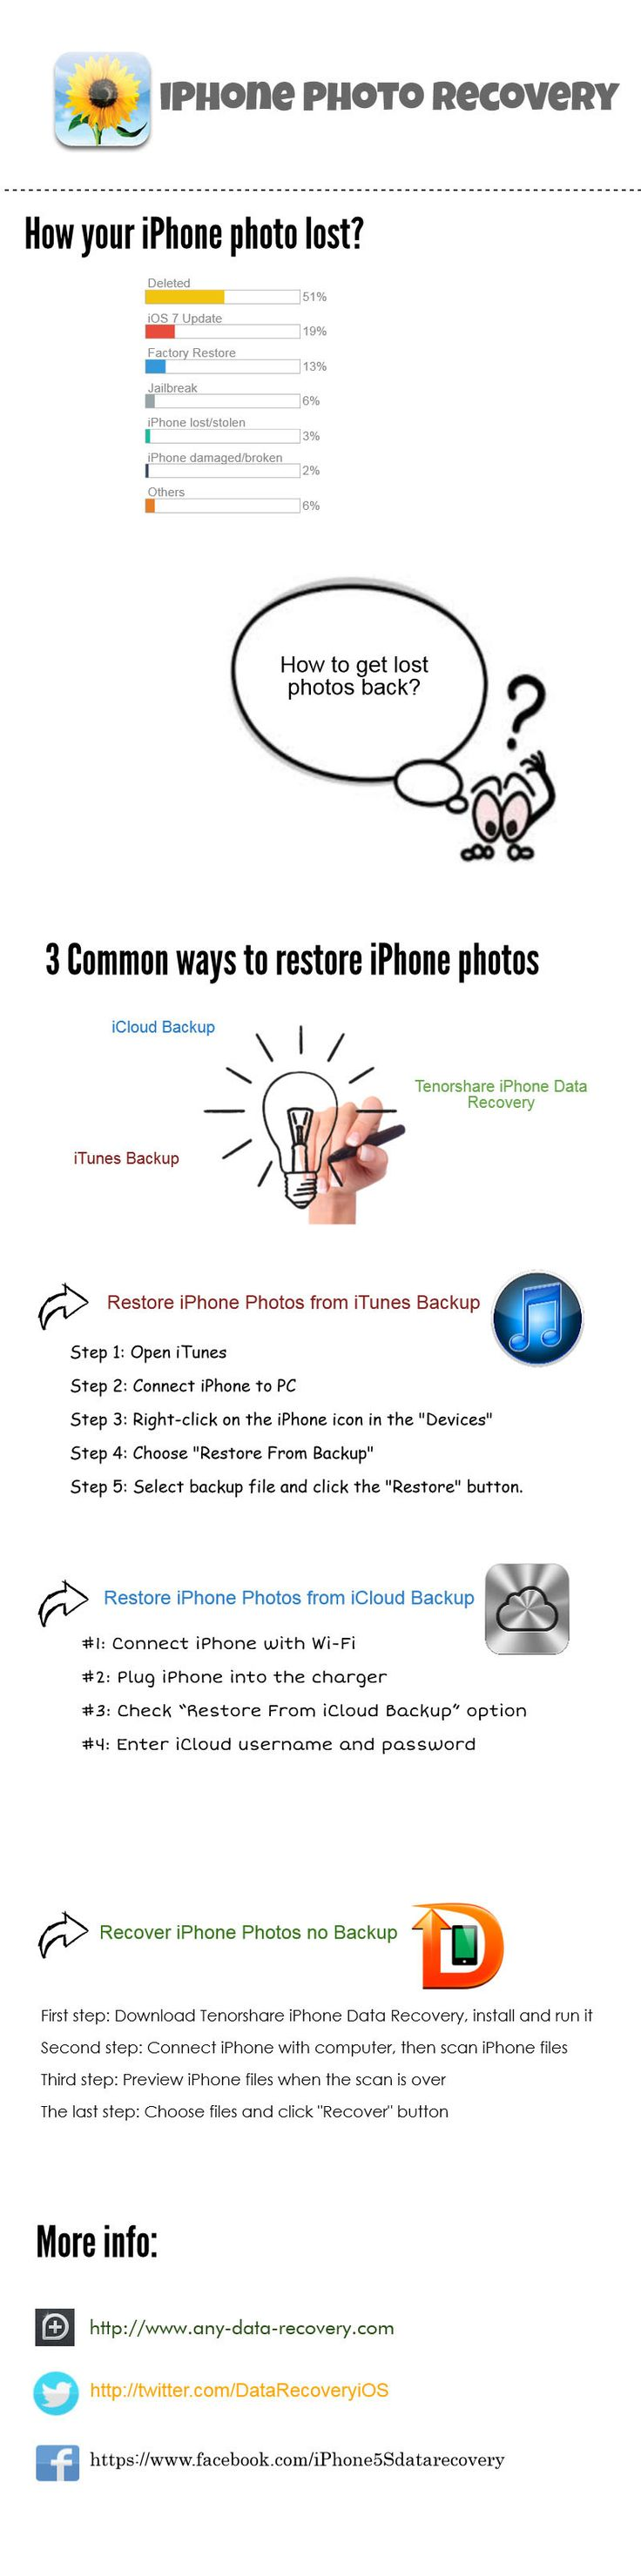 Easy way to recover lost or deleted #pictures from #iPhone 5S/5C/5/4S/4/3GS after deleted or lost on iOS 7 update/jailbreak, factory restore etc. Detailed guide for iPhone photo recovery http://www.any-data-recovery.com/topics/mobile-devices/recover-deleted-photos-from-iphone.html